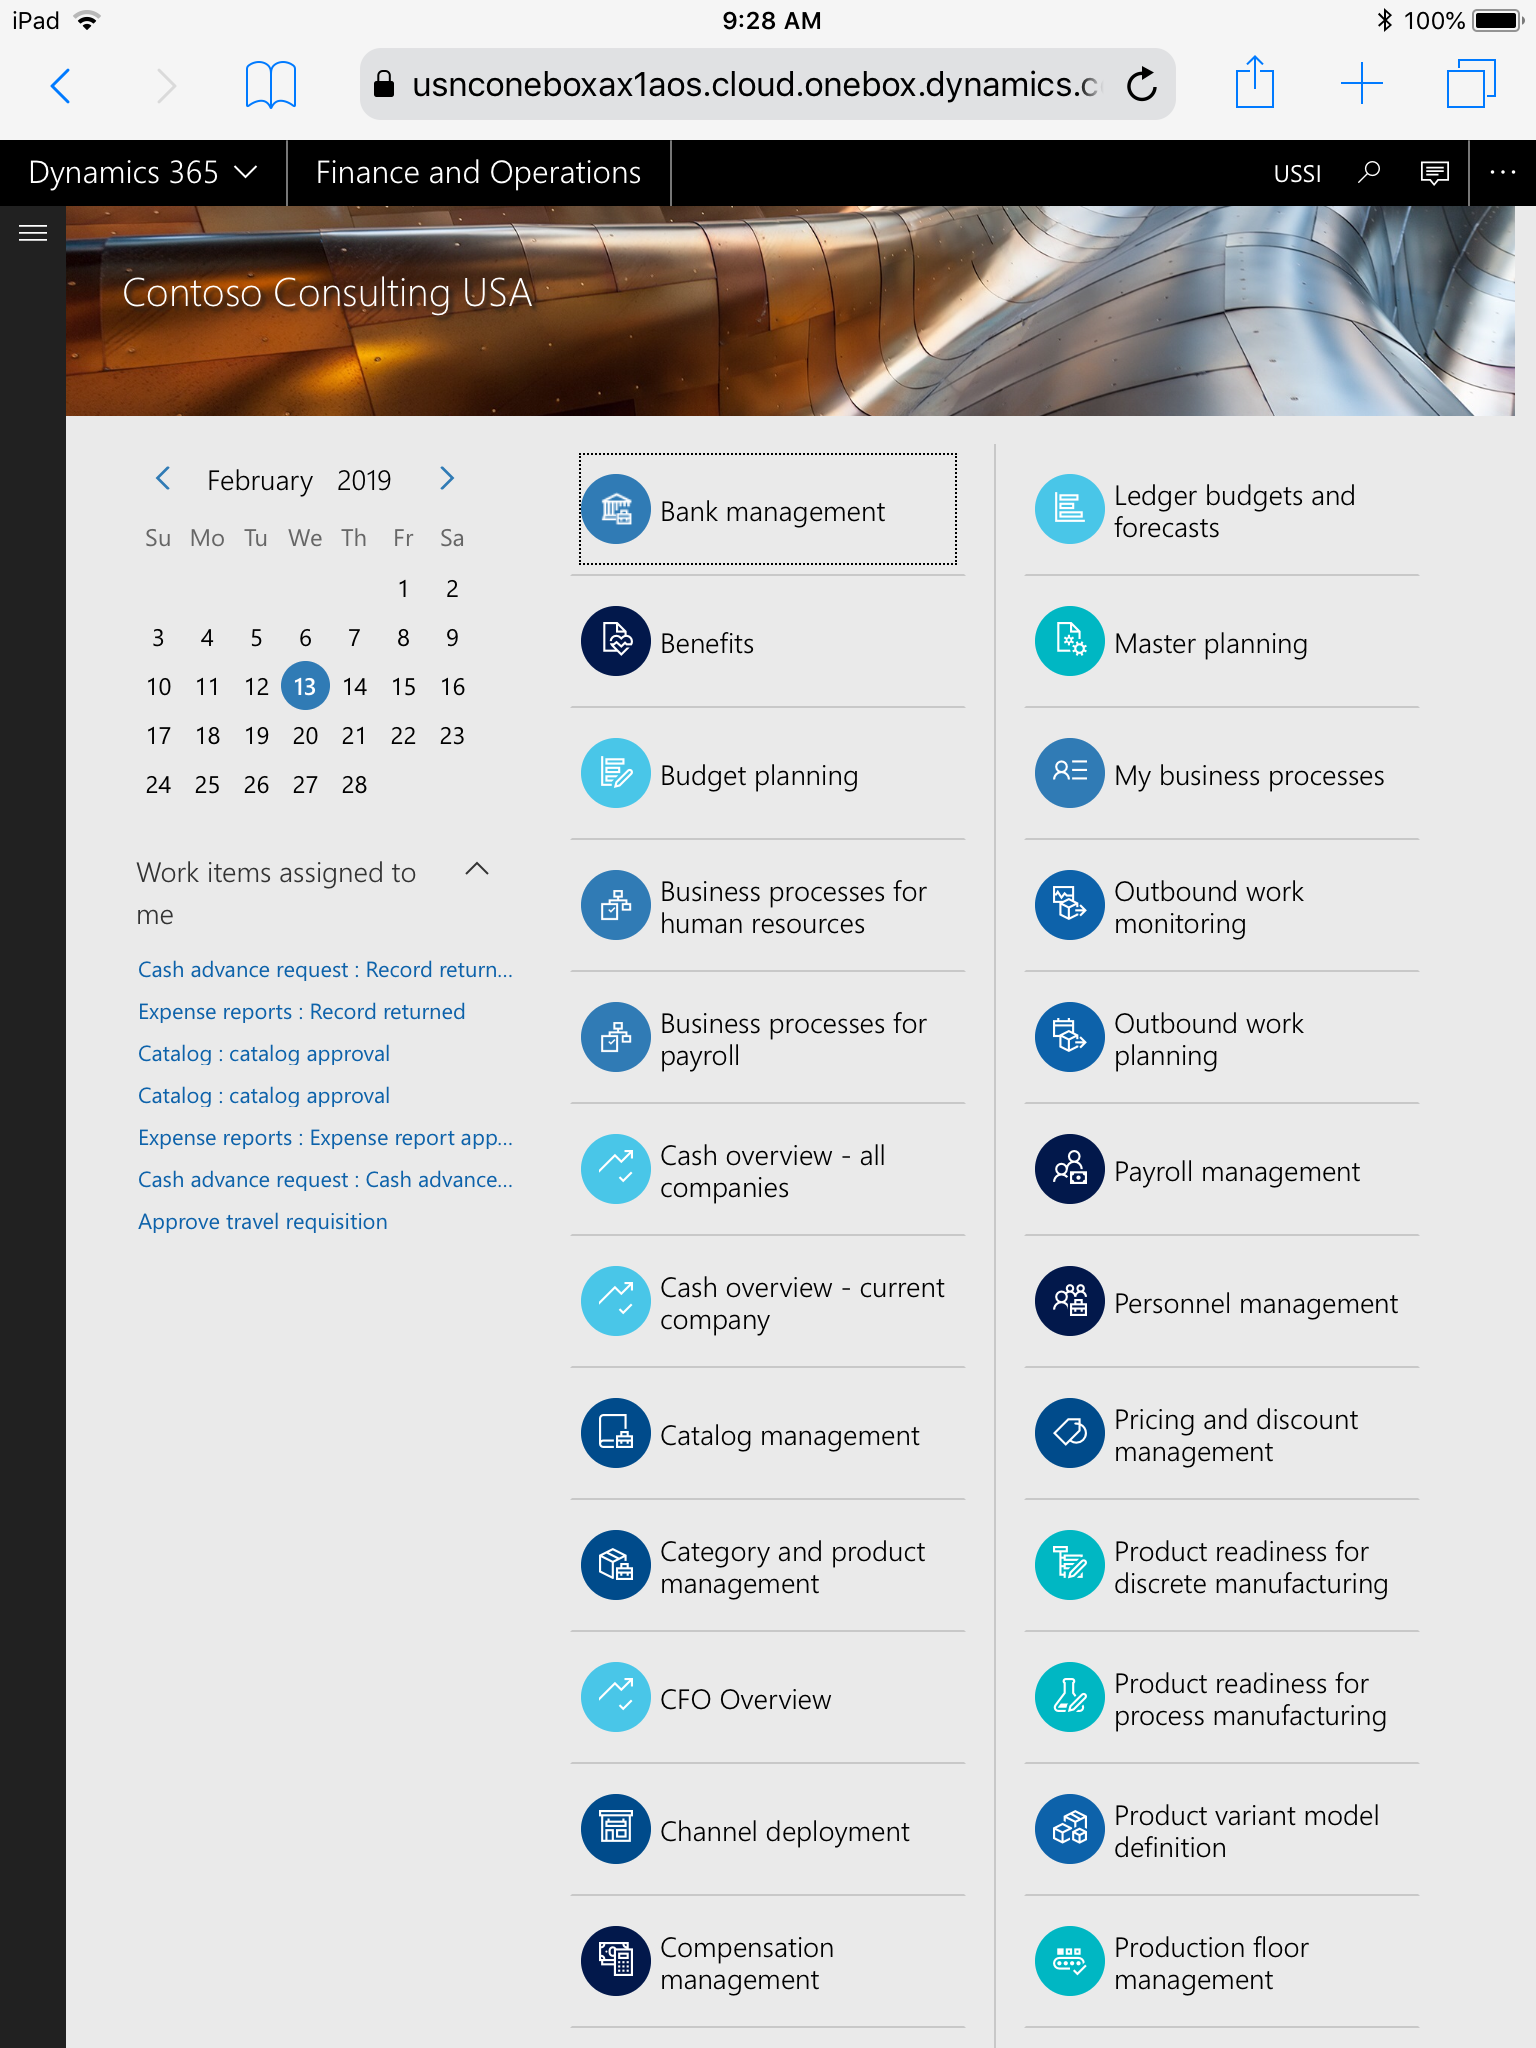 Dynamics 365 for Finance and Operations running on an iPad